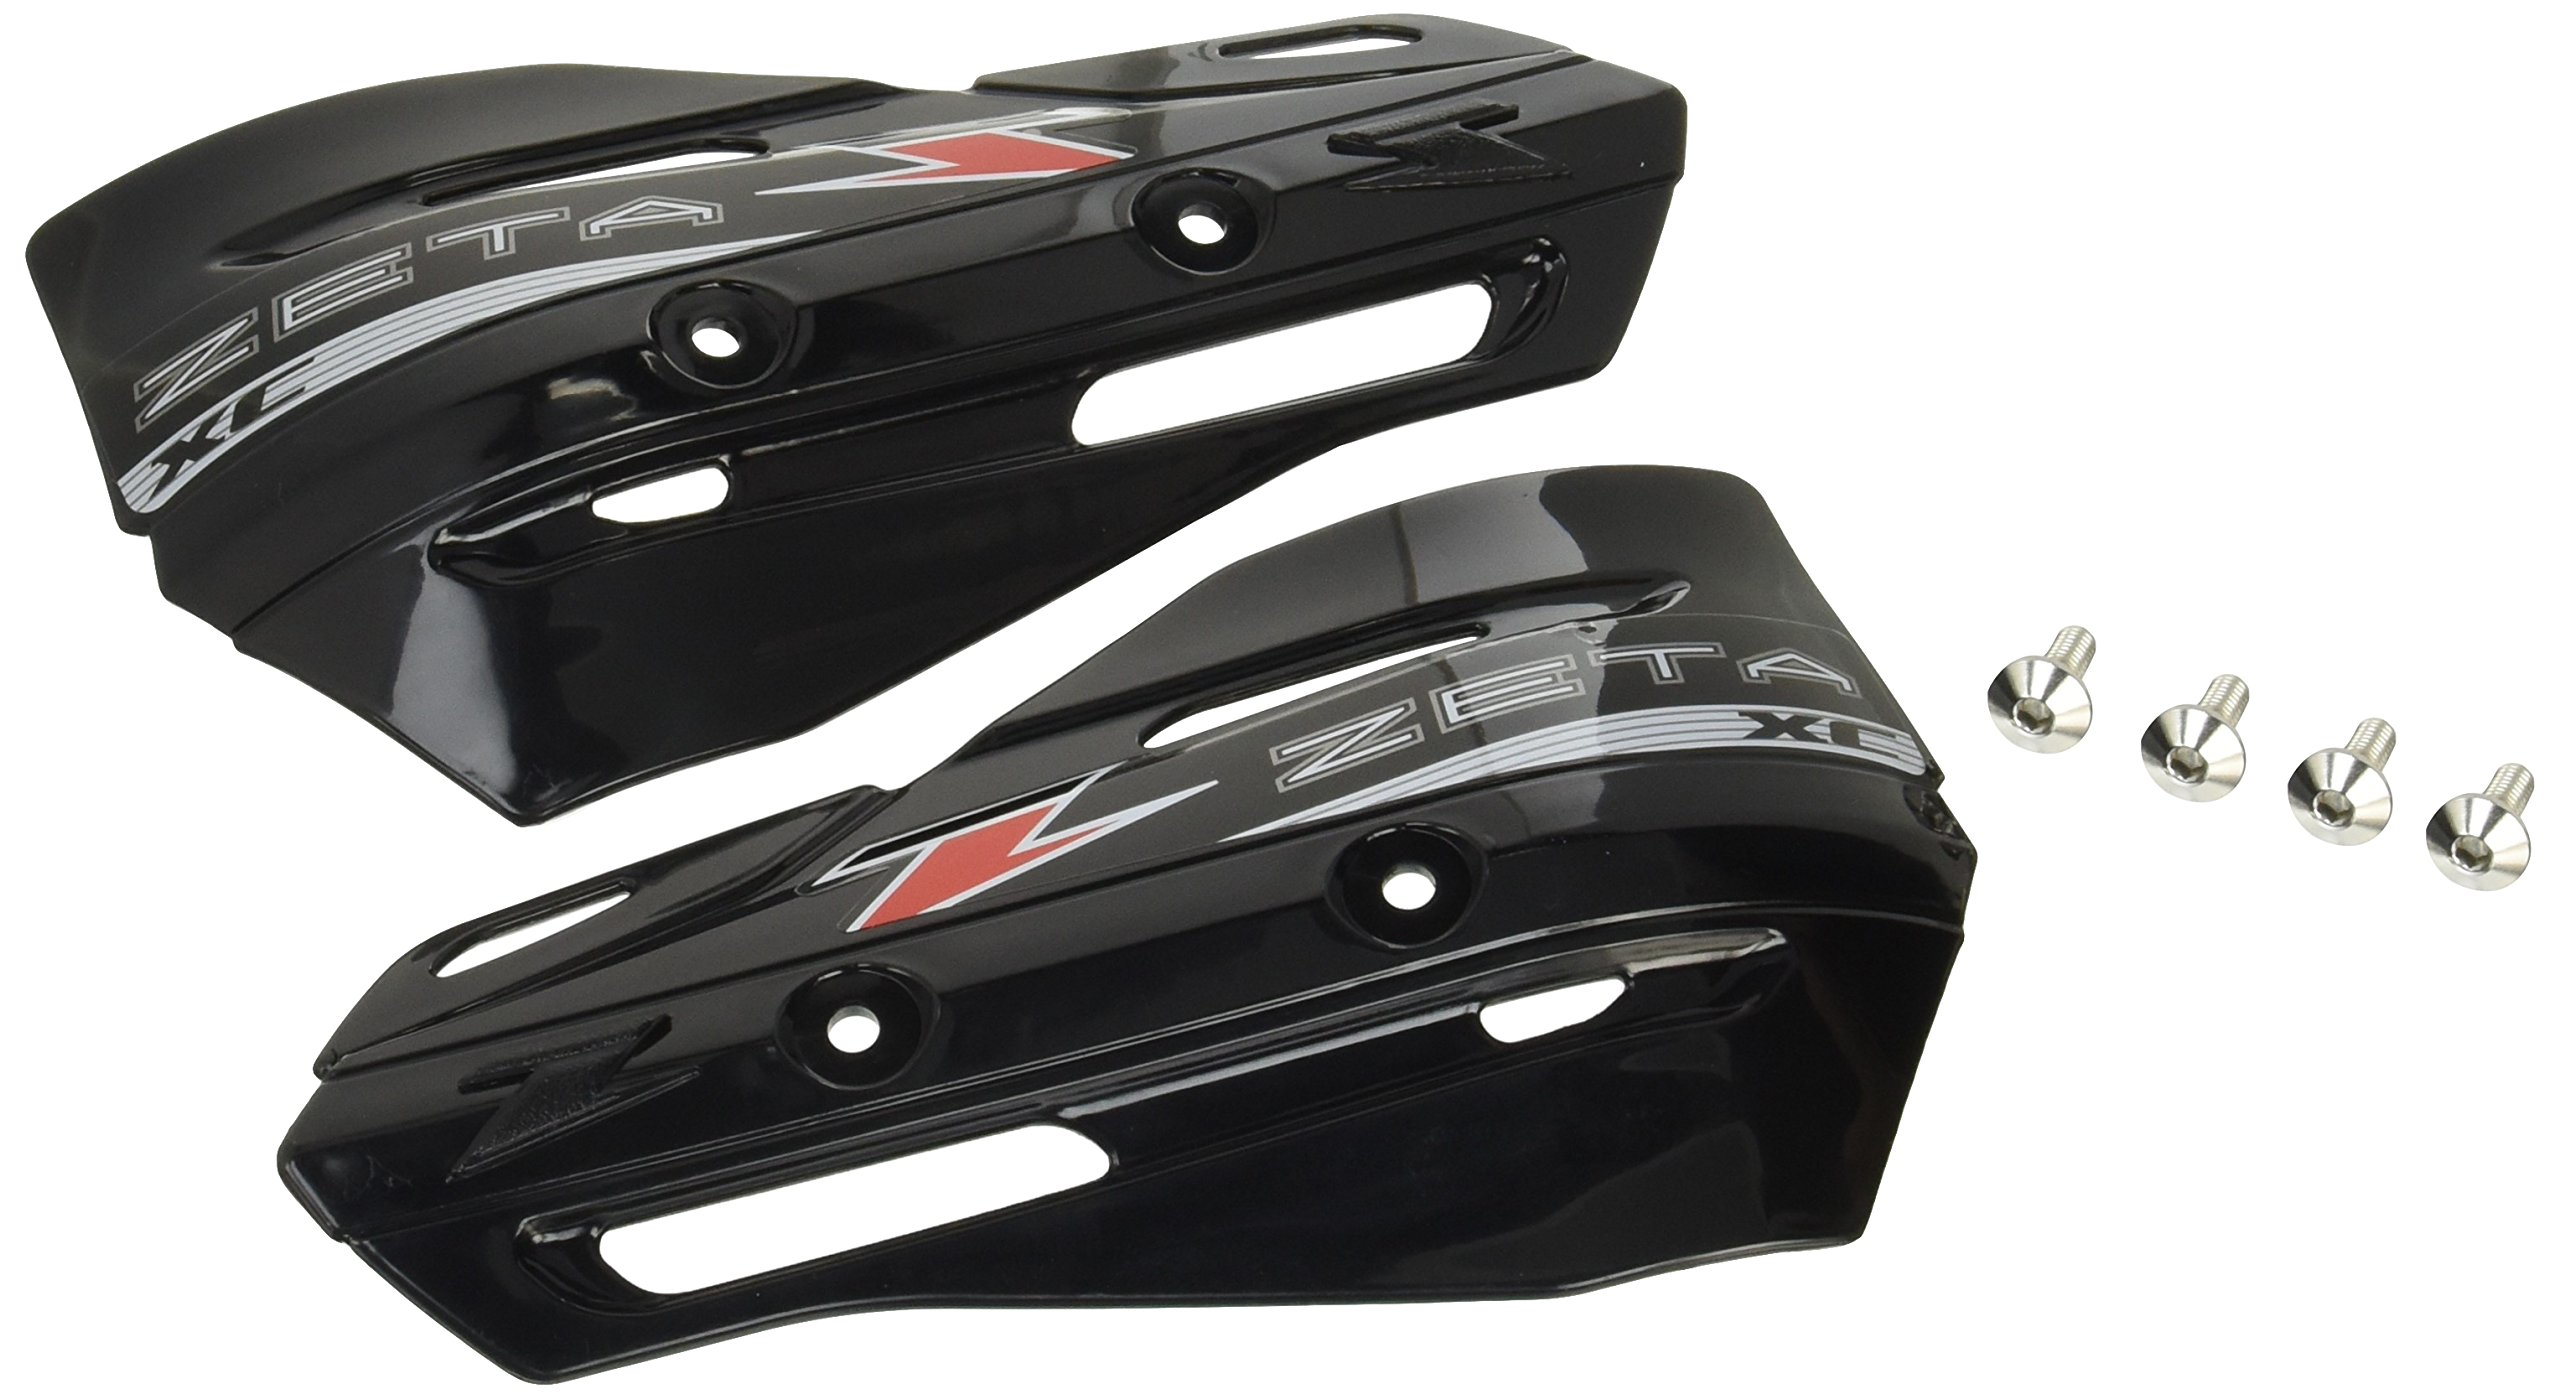 Zeta XC Protector BLACK Hand Shields (Pair) for Armor Handguards